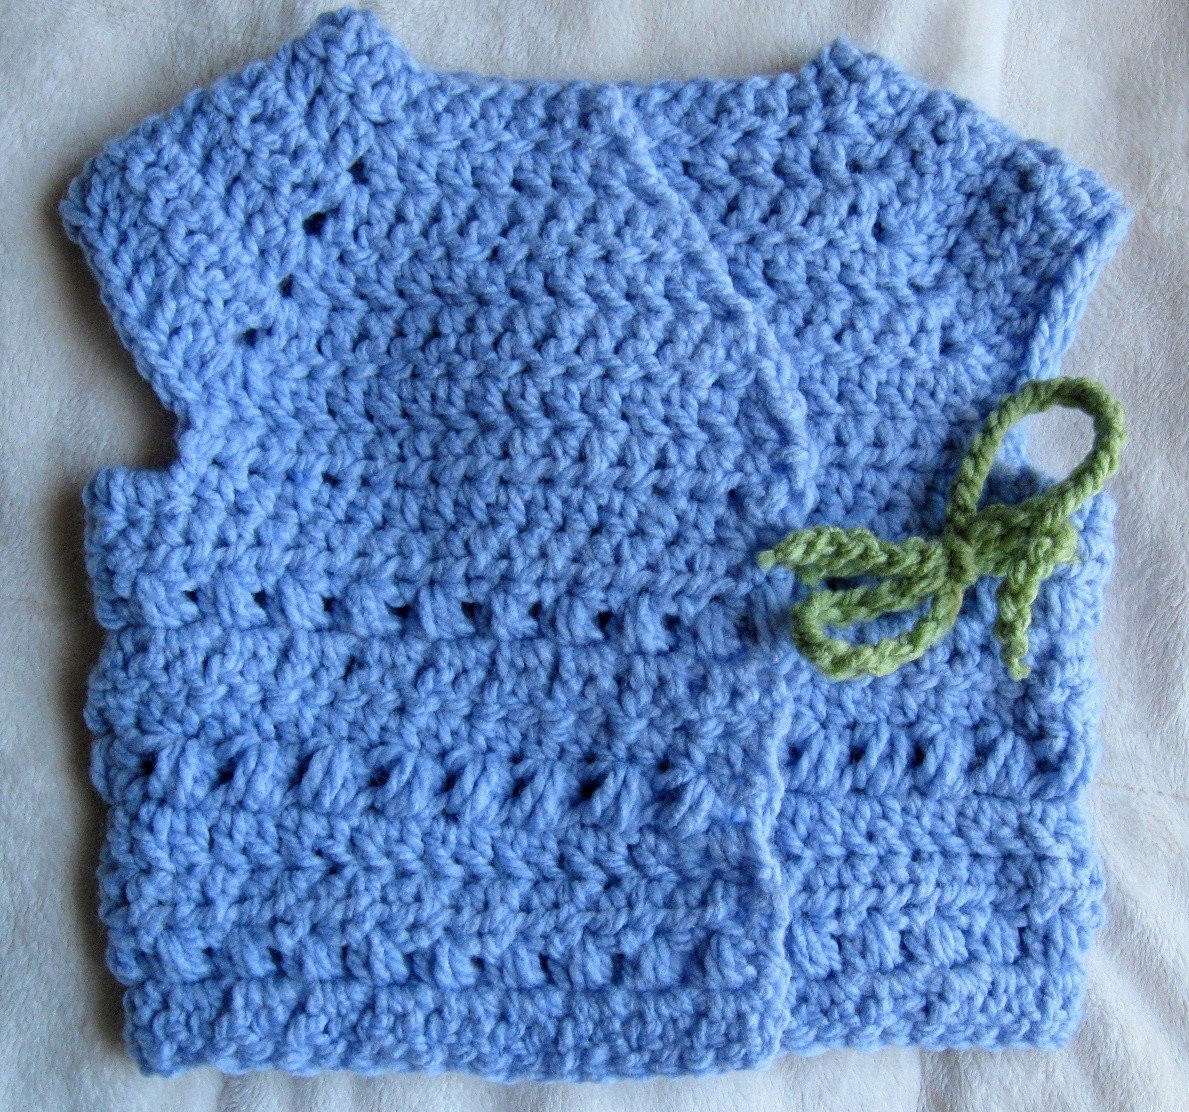 Simple Crochet Patterns Awesome Easy Crocheted Sweater Patterns Crochet and Knitting Of Delightful 49 Models Simple Crochet Patterns